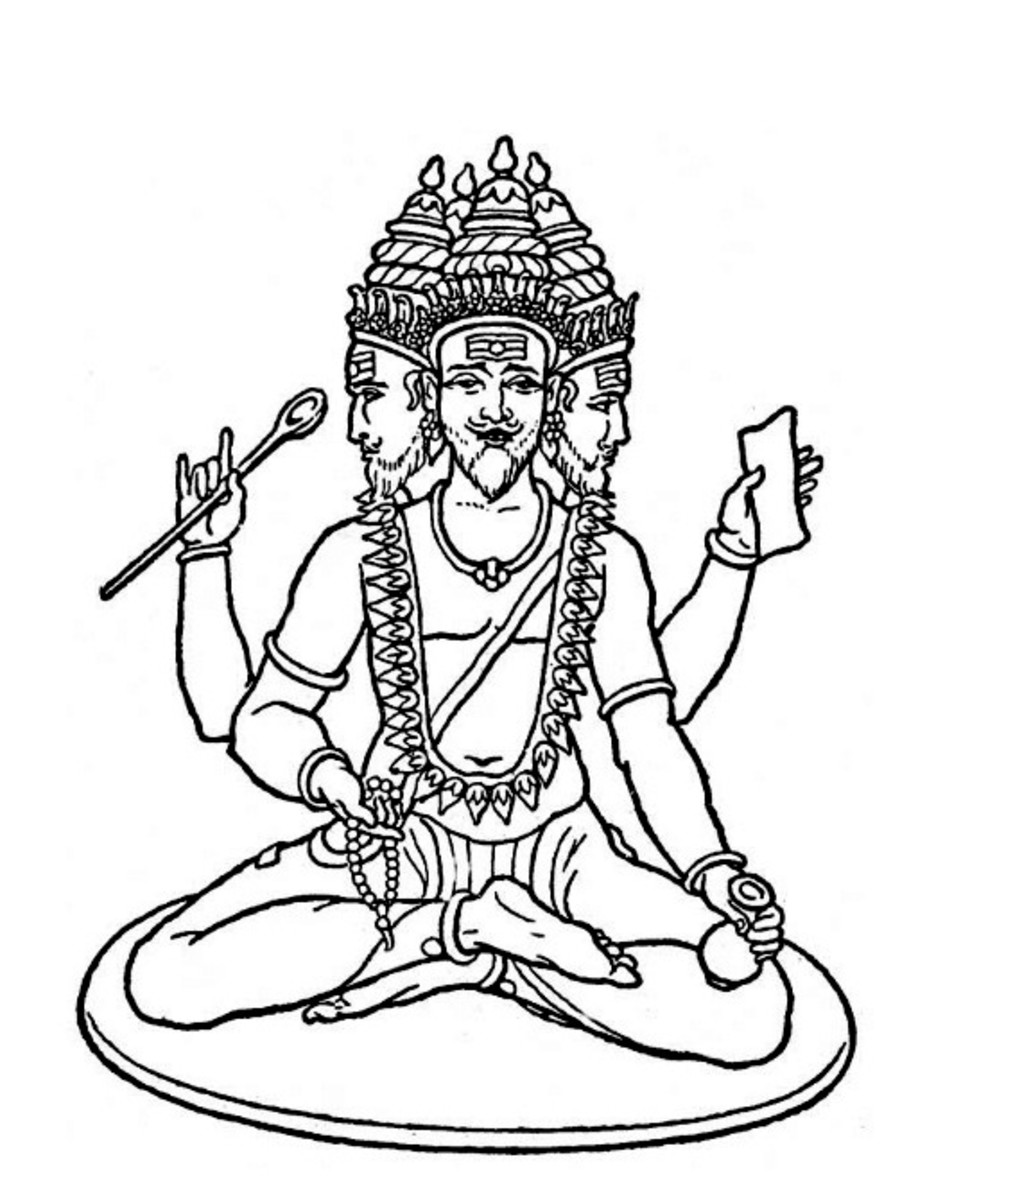 Mantras of Lord Brahma